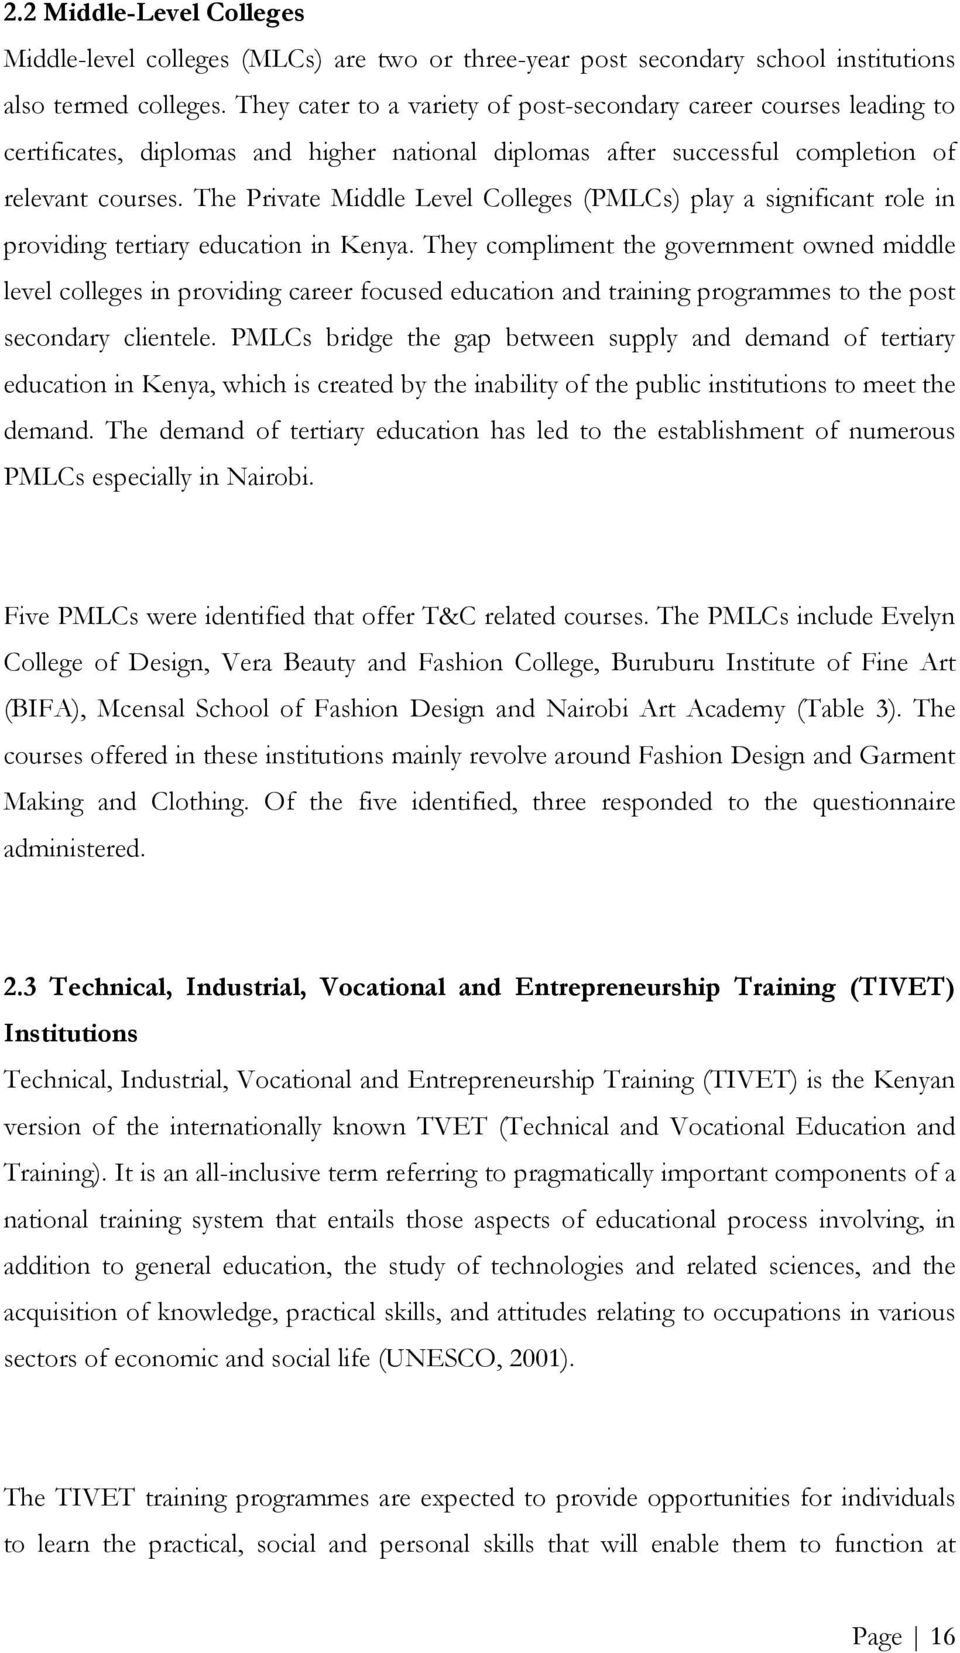 Analysis Of Textile Clothing Training Institutions In The East Southern Africa Pdf Free Download